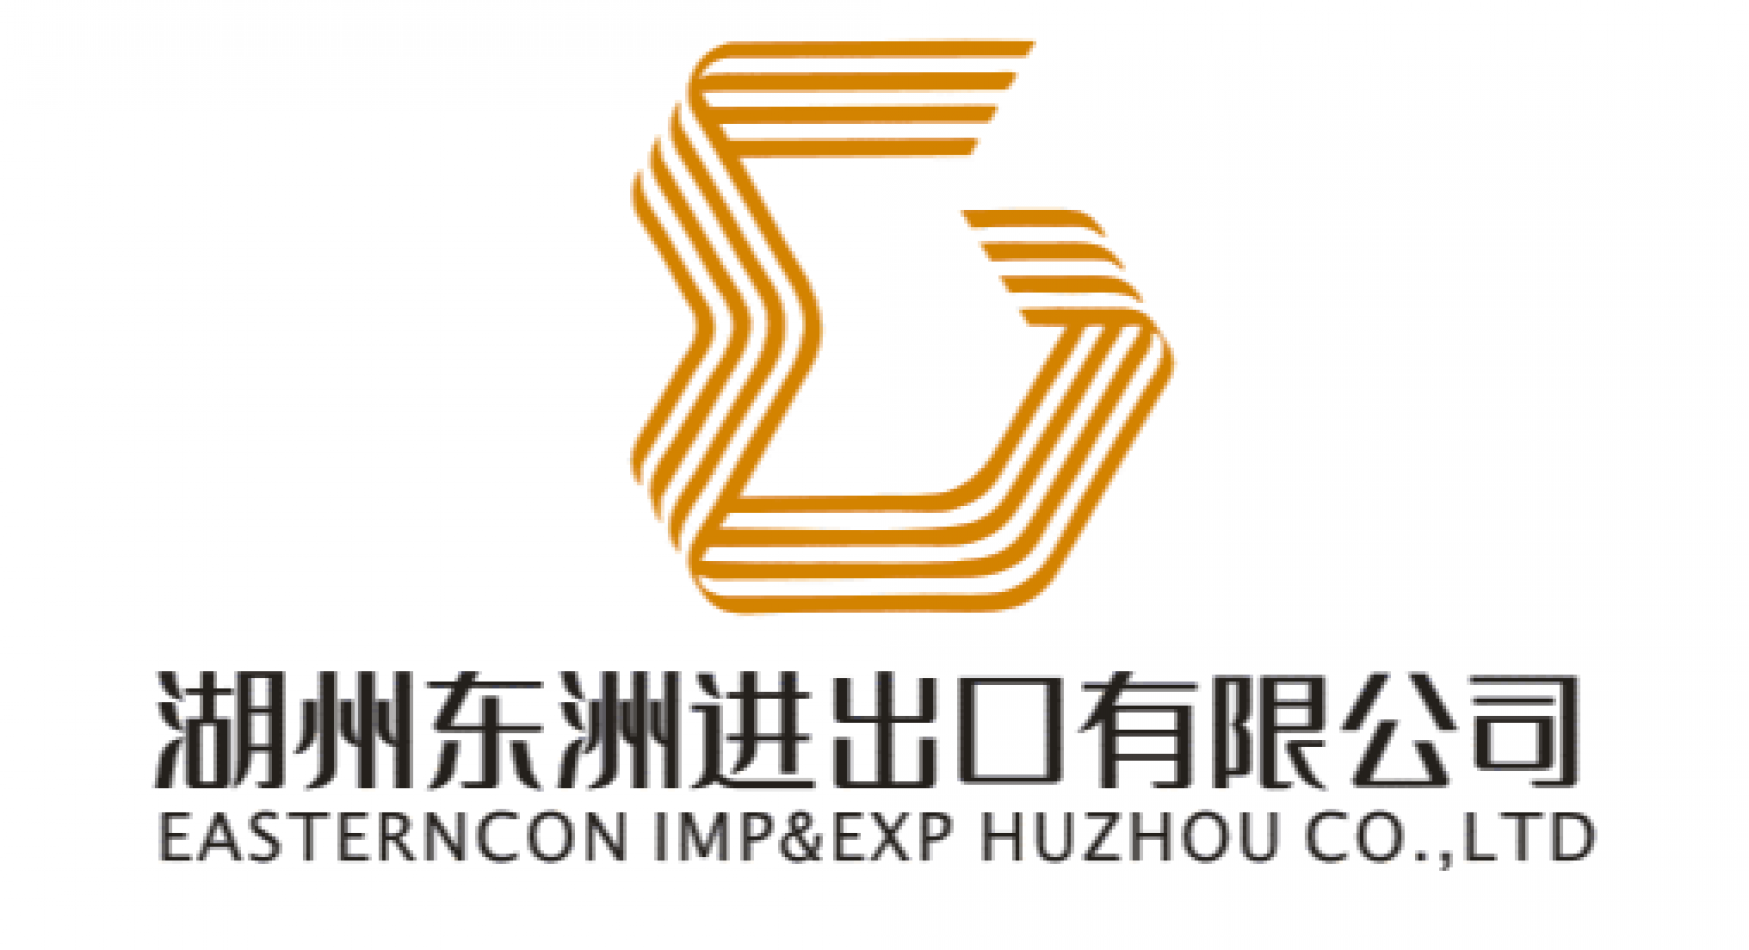 EASTERNCON  IMP & EXP  HUZHOU CO.,LTD